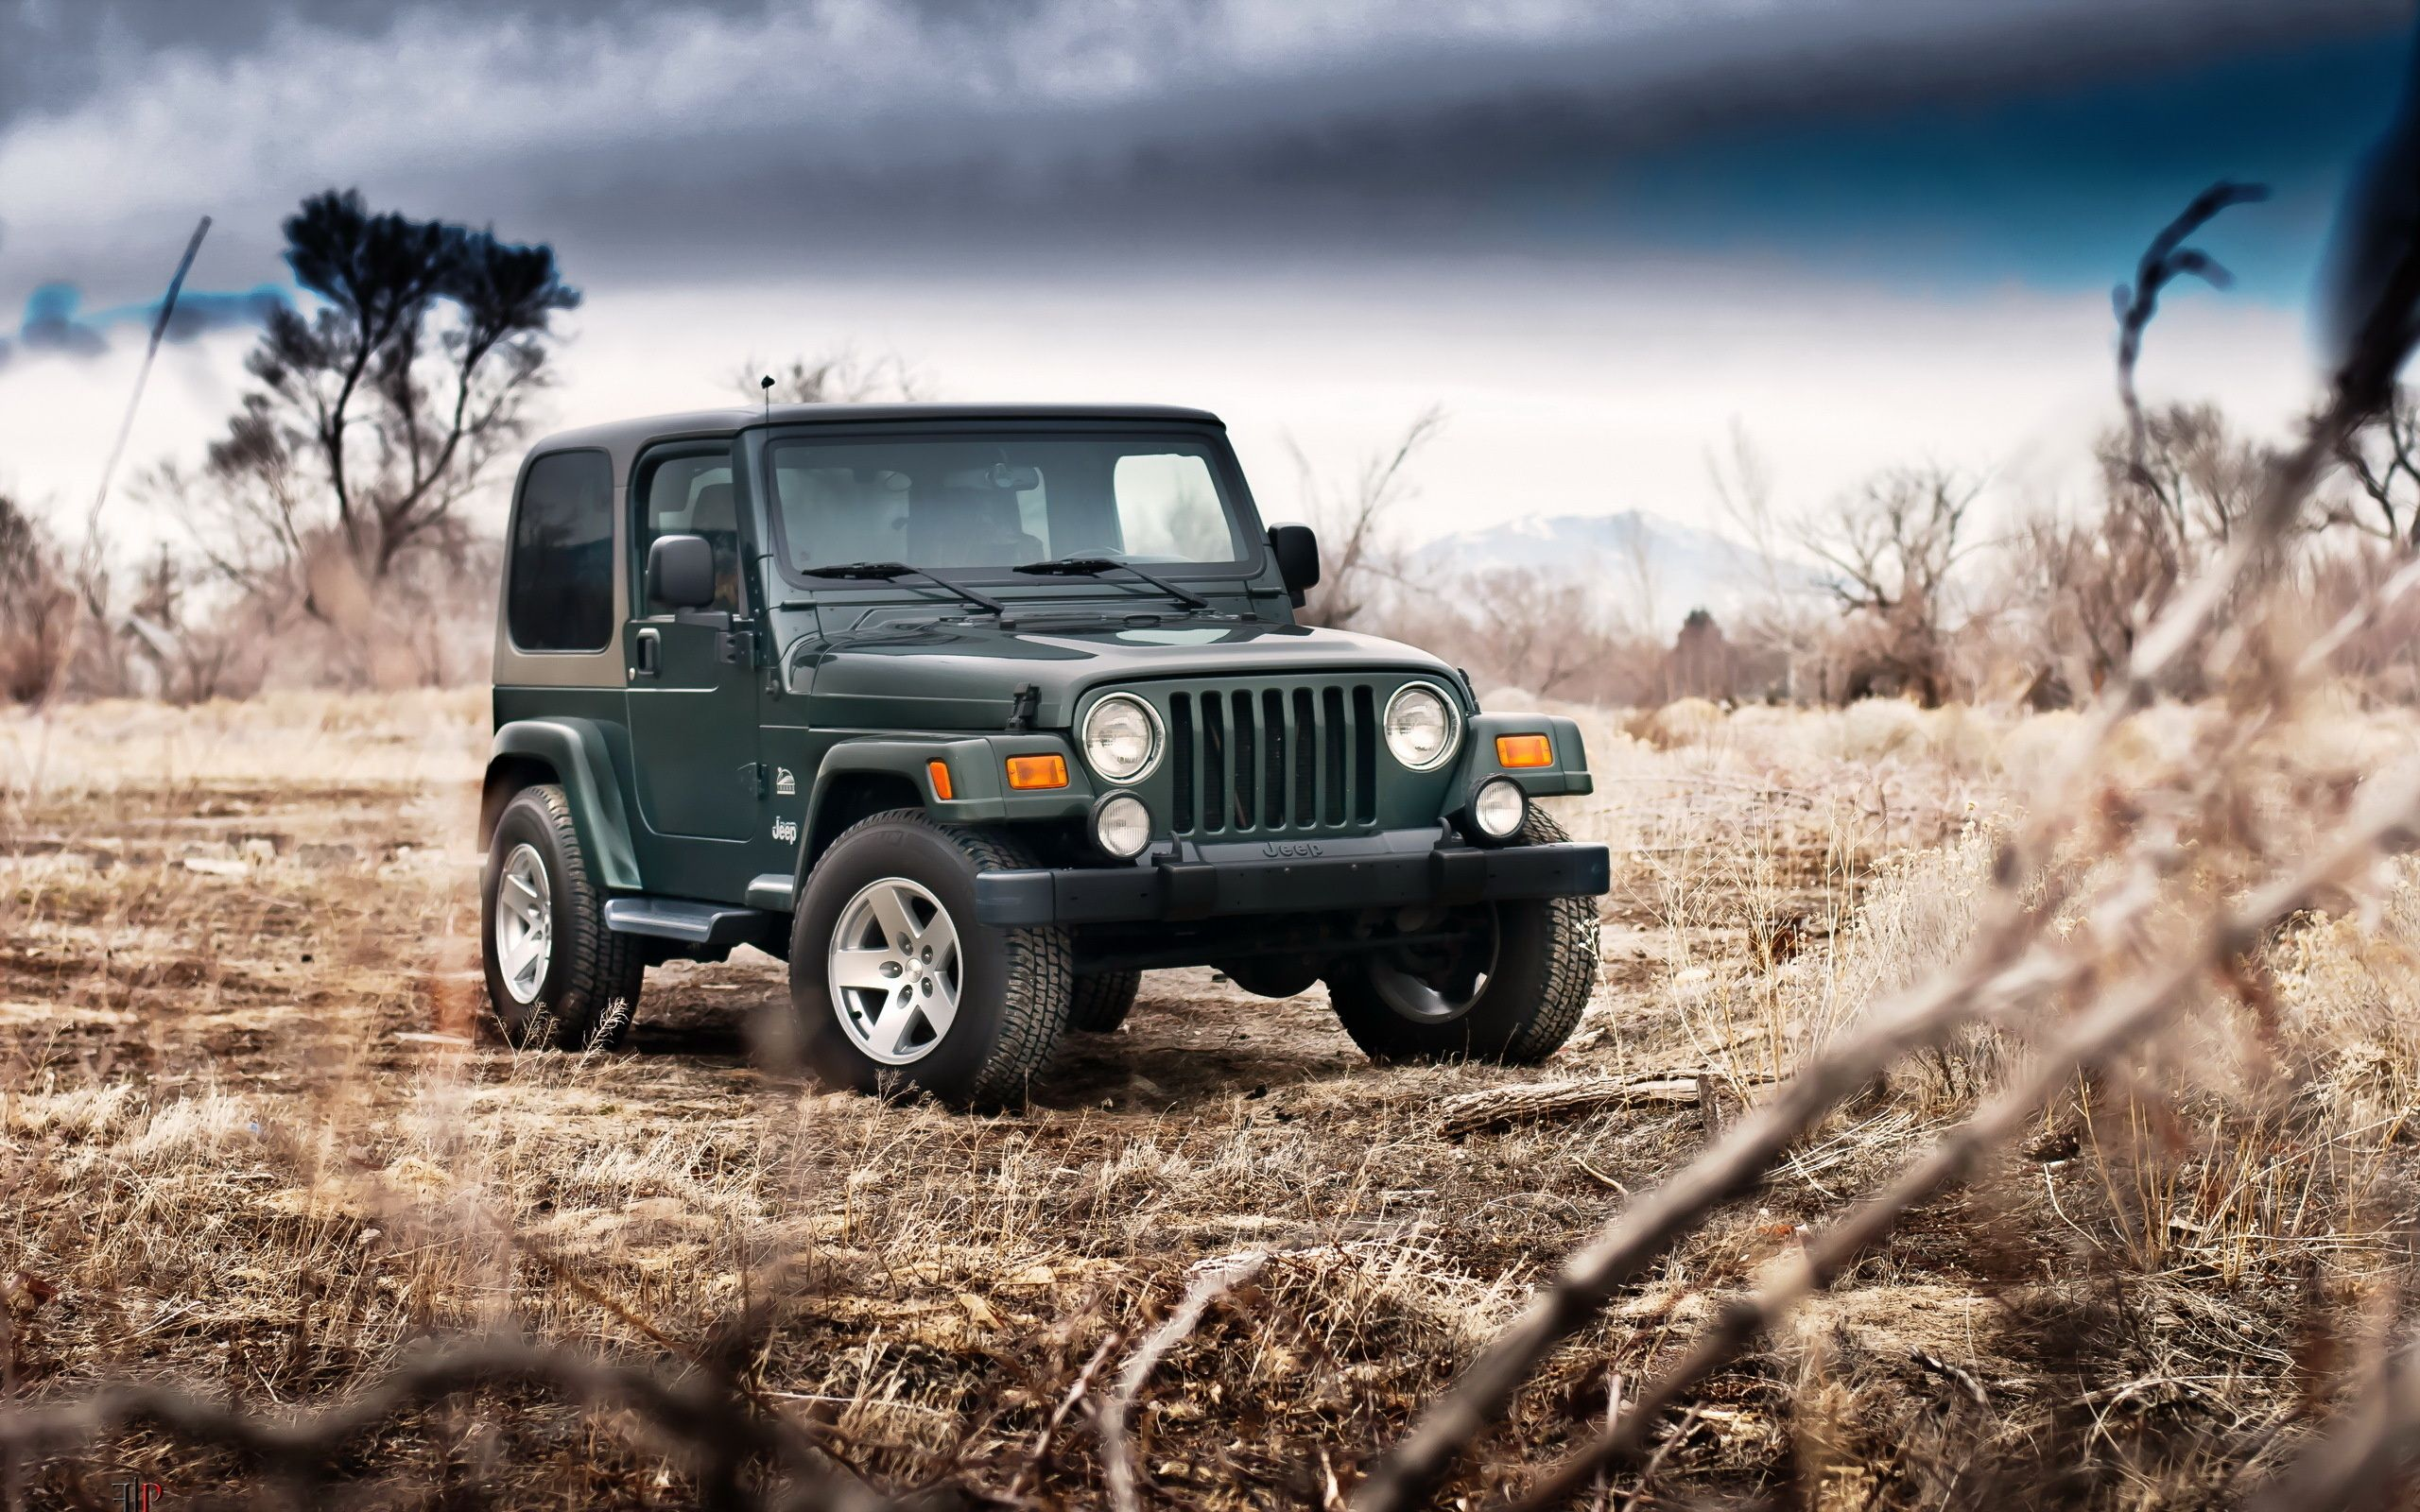 Jeep Rubicon Offroad Editing Background Best Background Images Best Photo Background